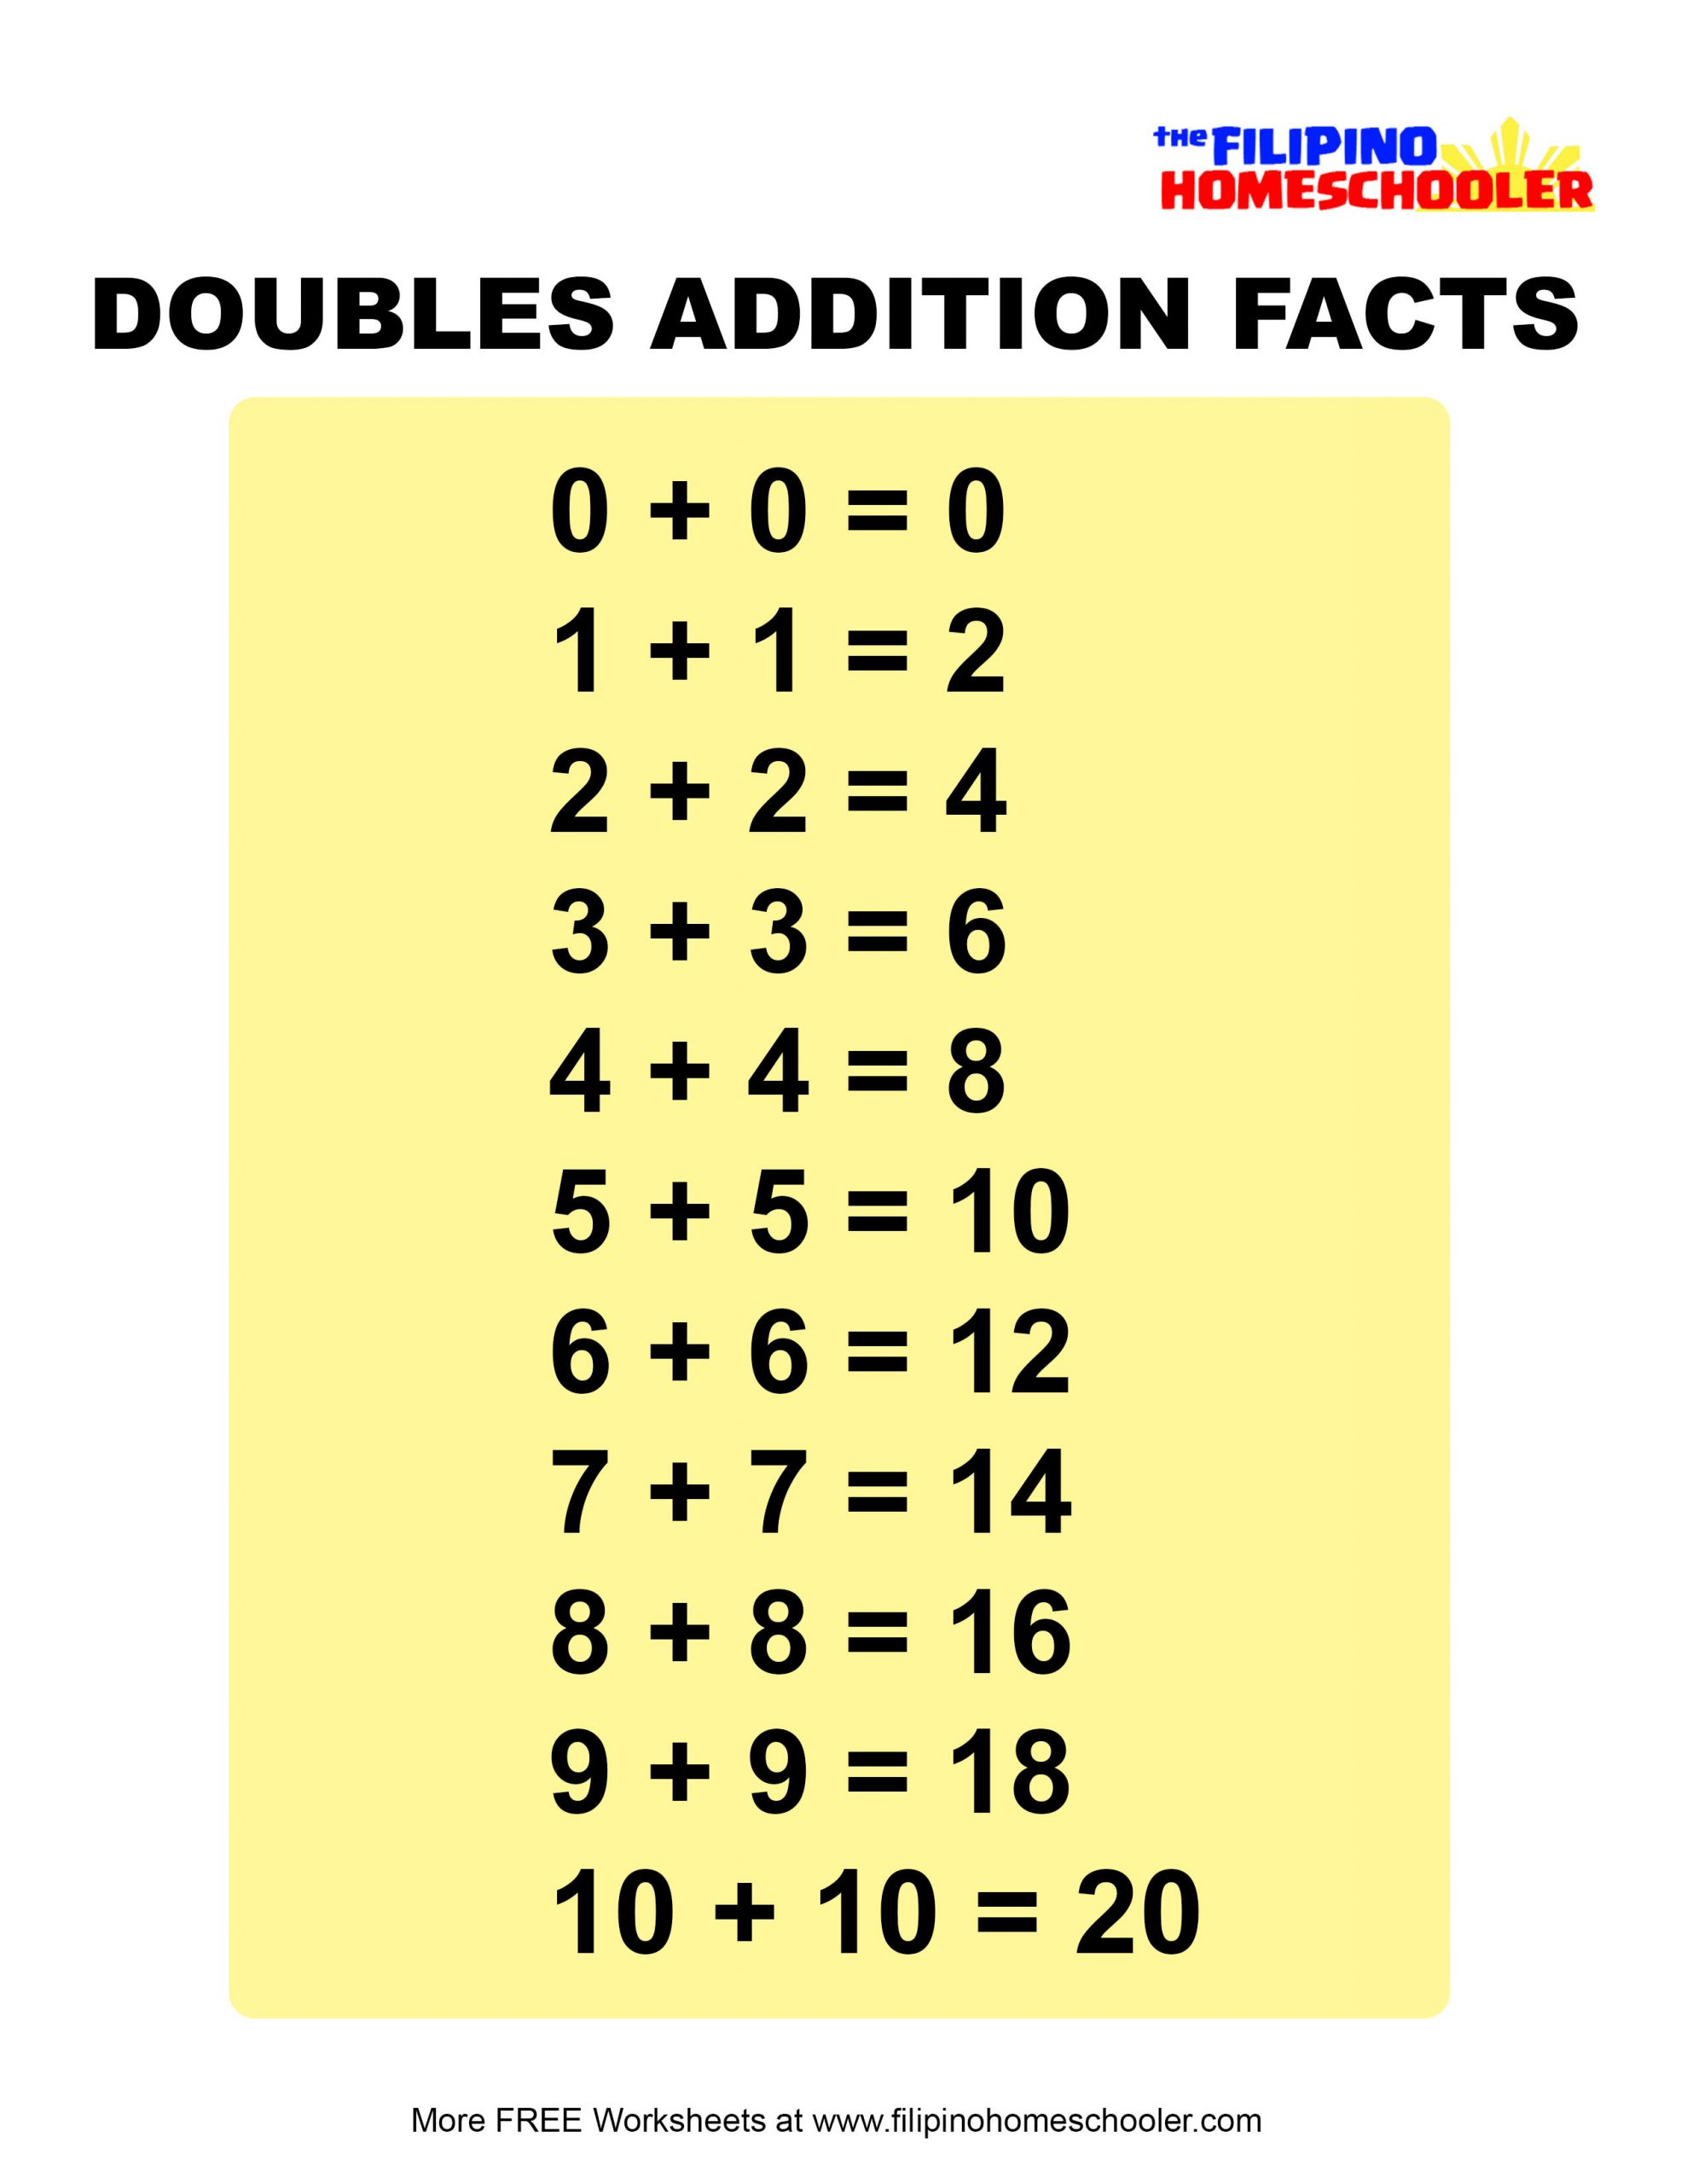 Doubles Math Worksheet Adding Doubles Worksheets and Teaching Strategies — the